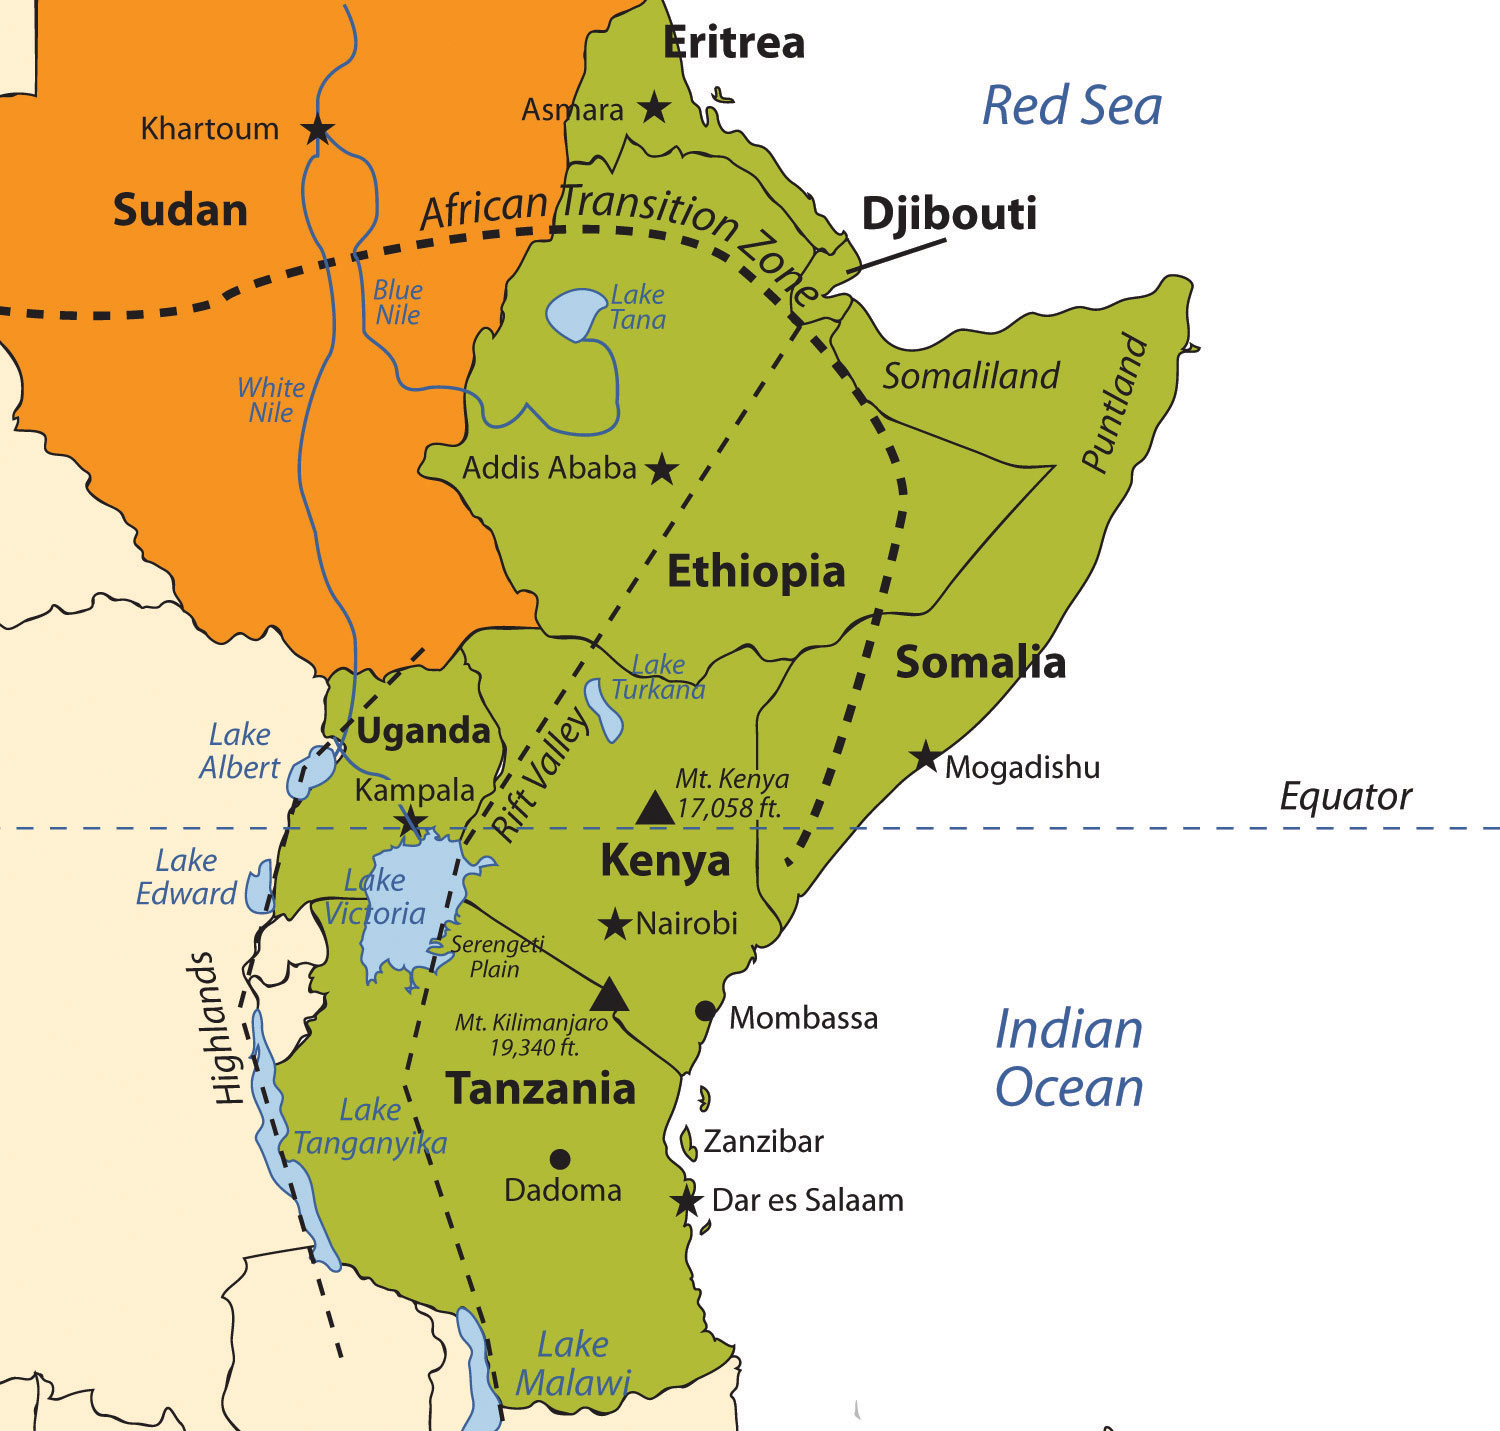 Lake Victoria On Map Of Africa.East Africa